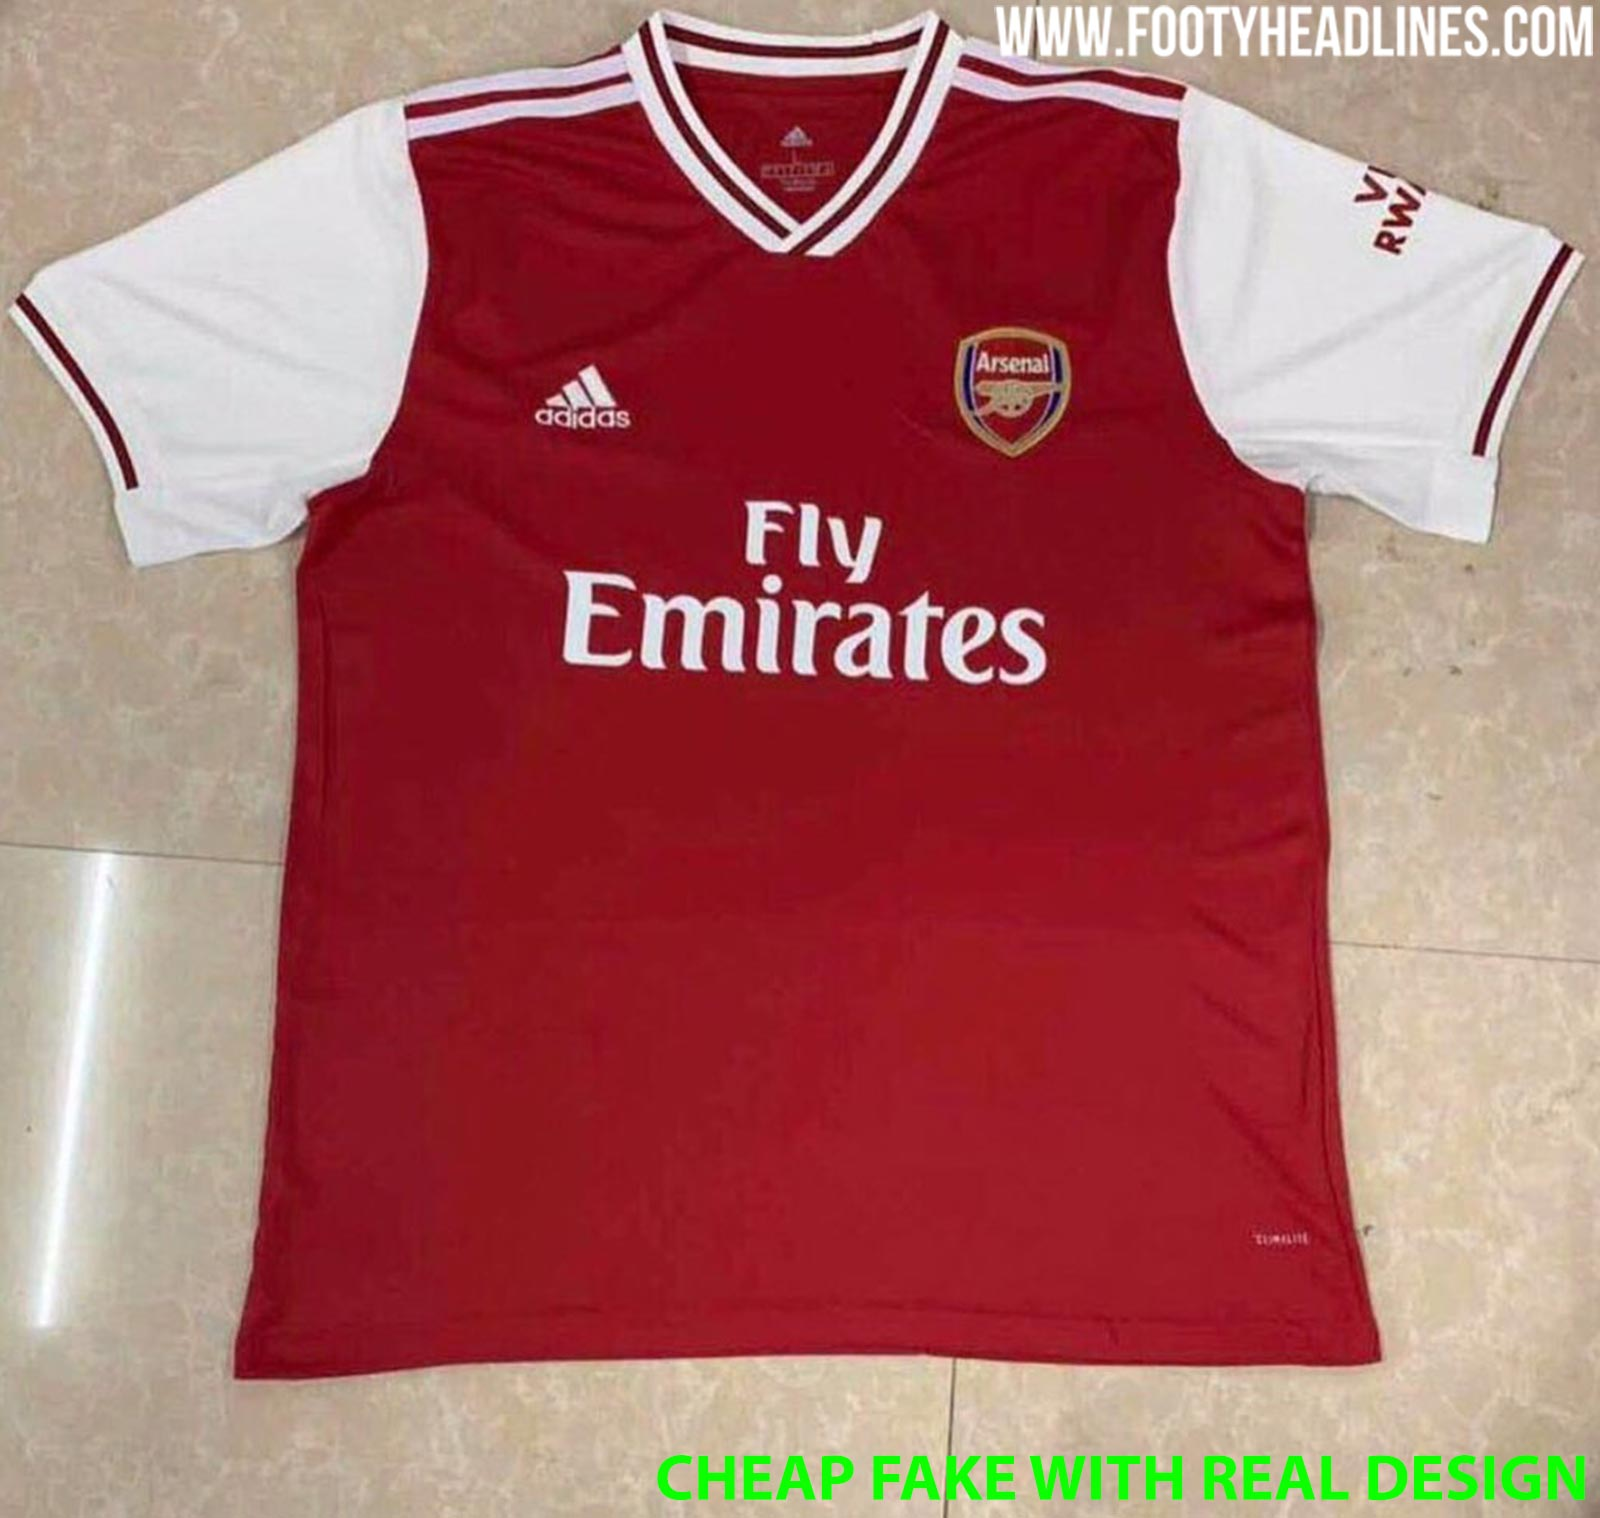 Arsenal Schedule 2020 Leaked: Arsenal 19 20 Home Kit (Fake With Real Design)   Footy